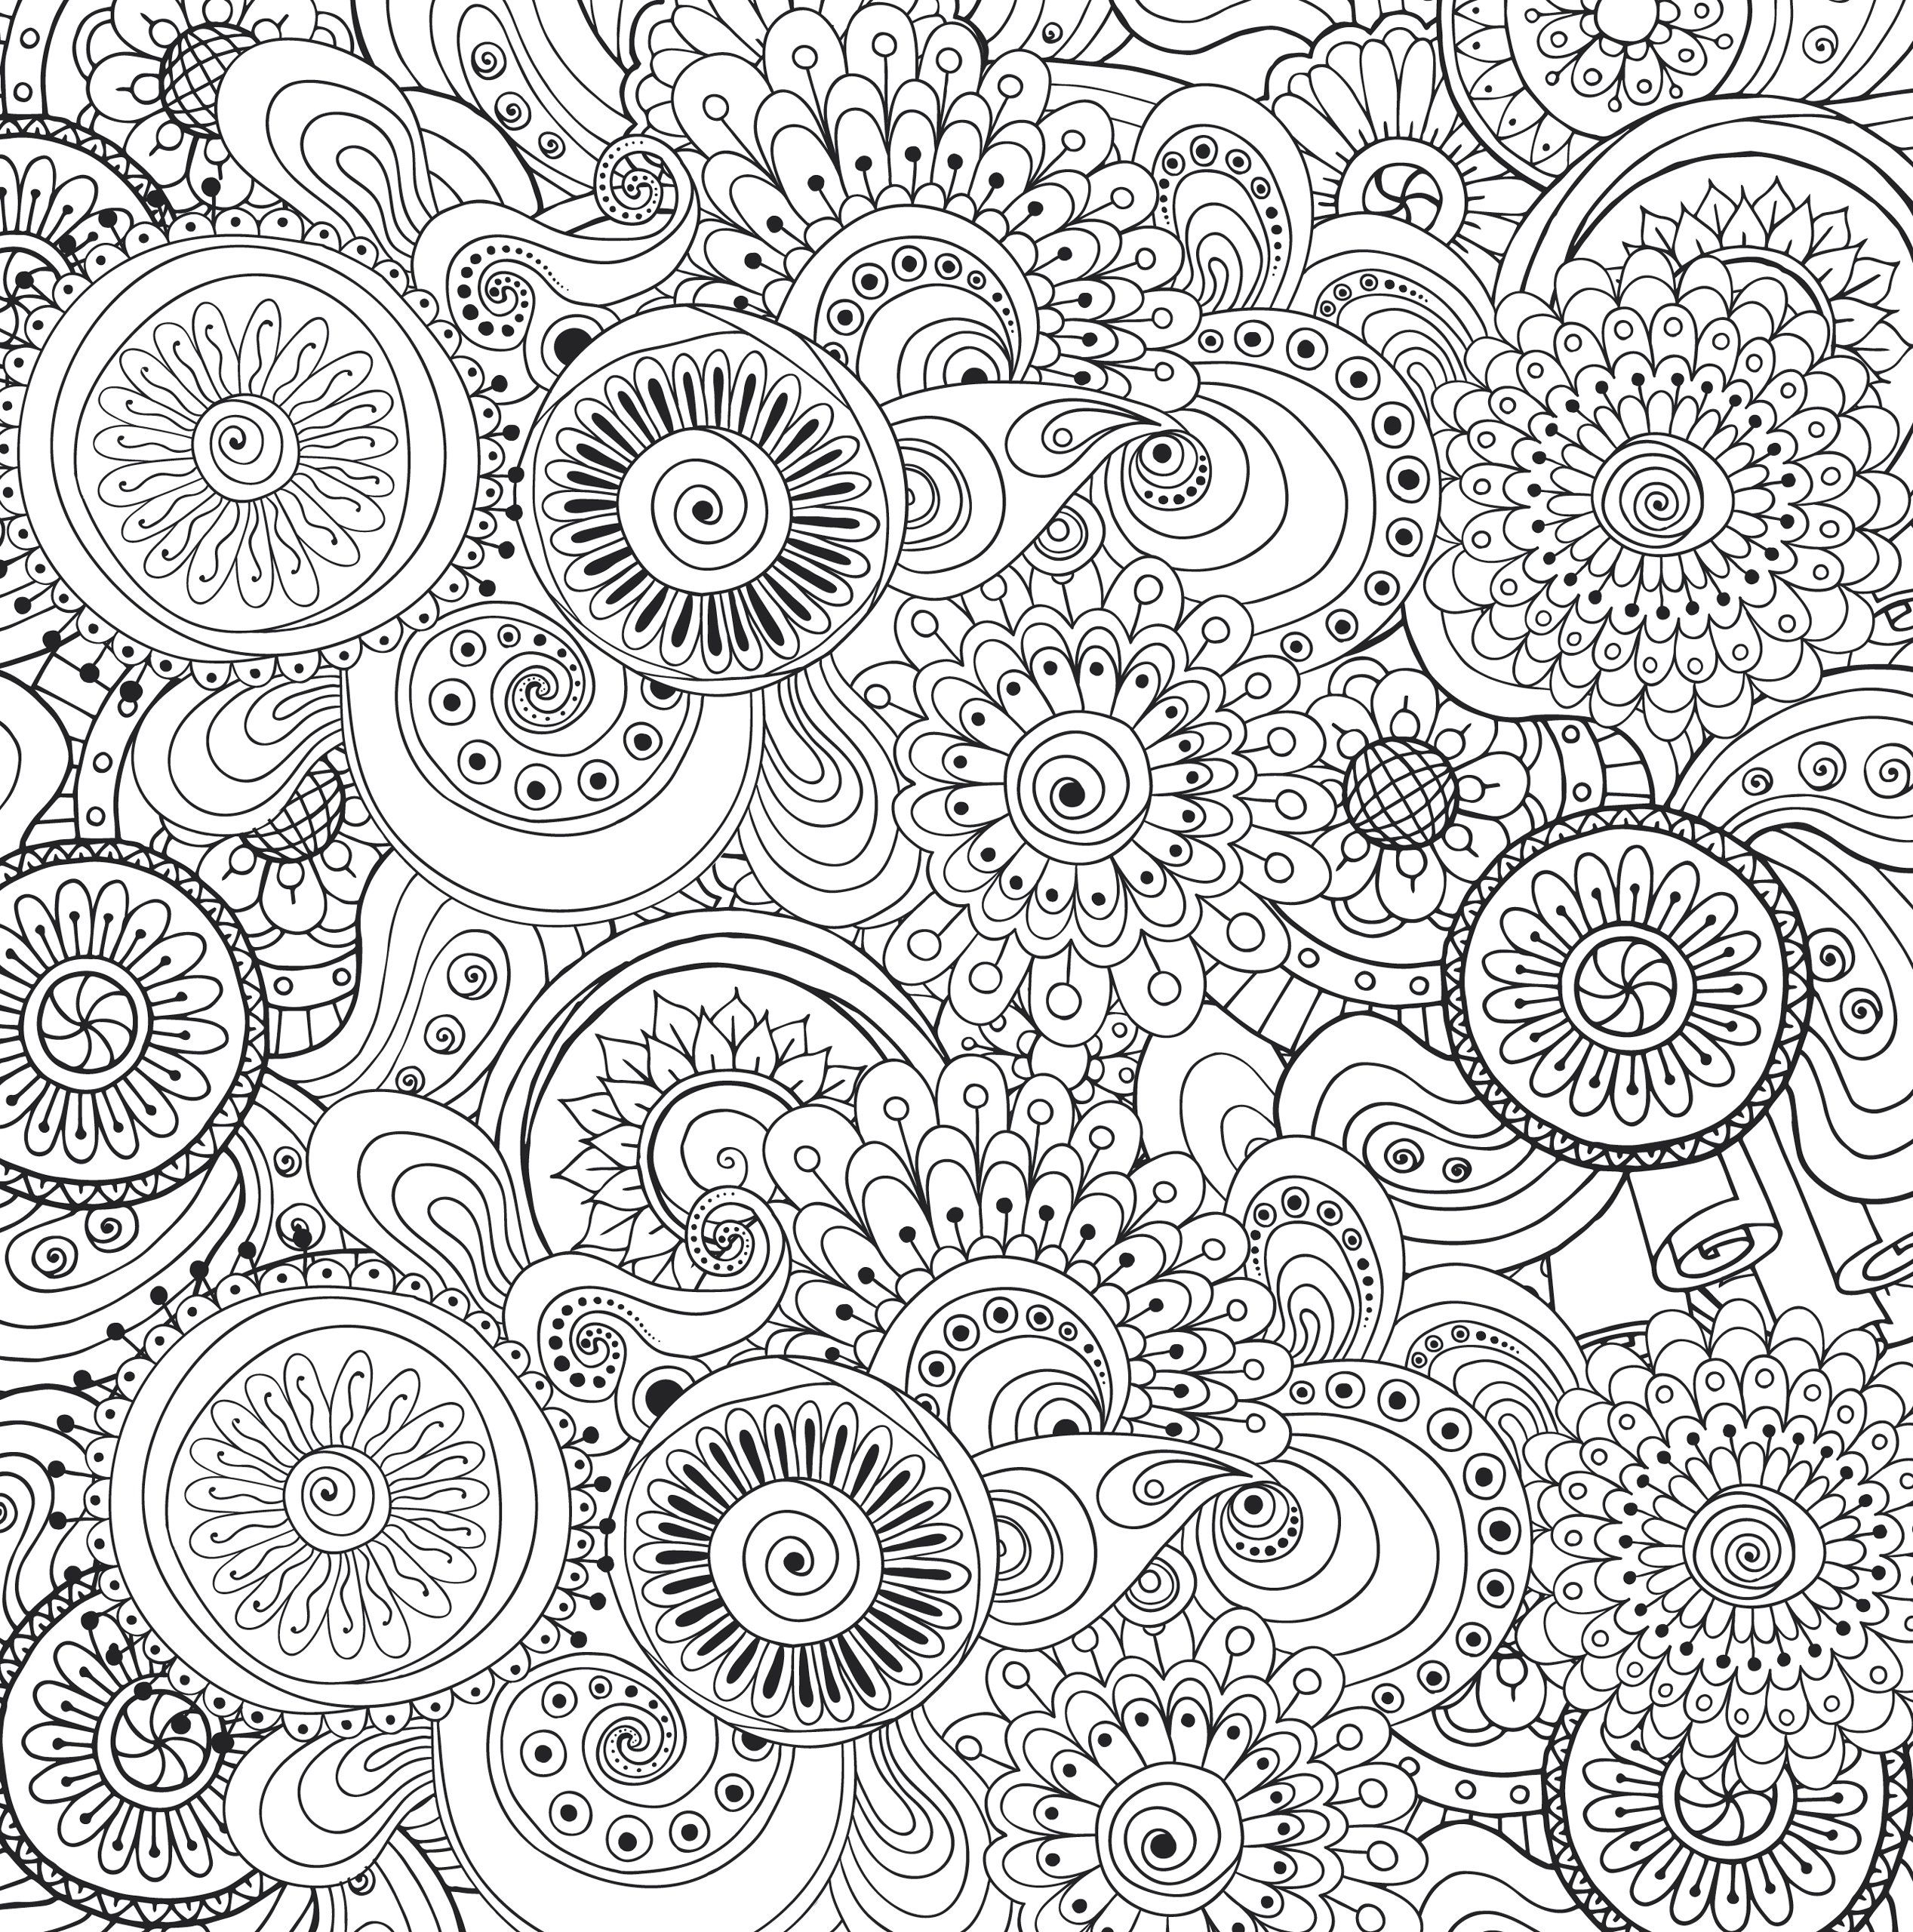 Colouring in for adults why - Peaceful Paisleys Adult Coloring Book 31 Stress Relieving Designs Peter Pauper Press